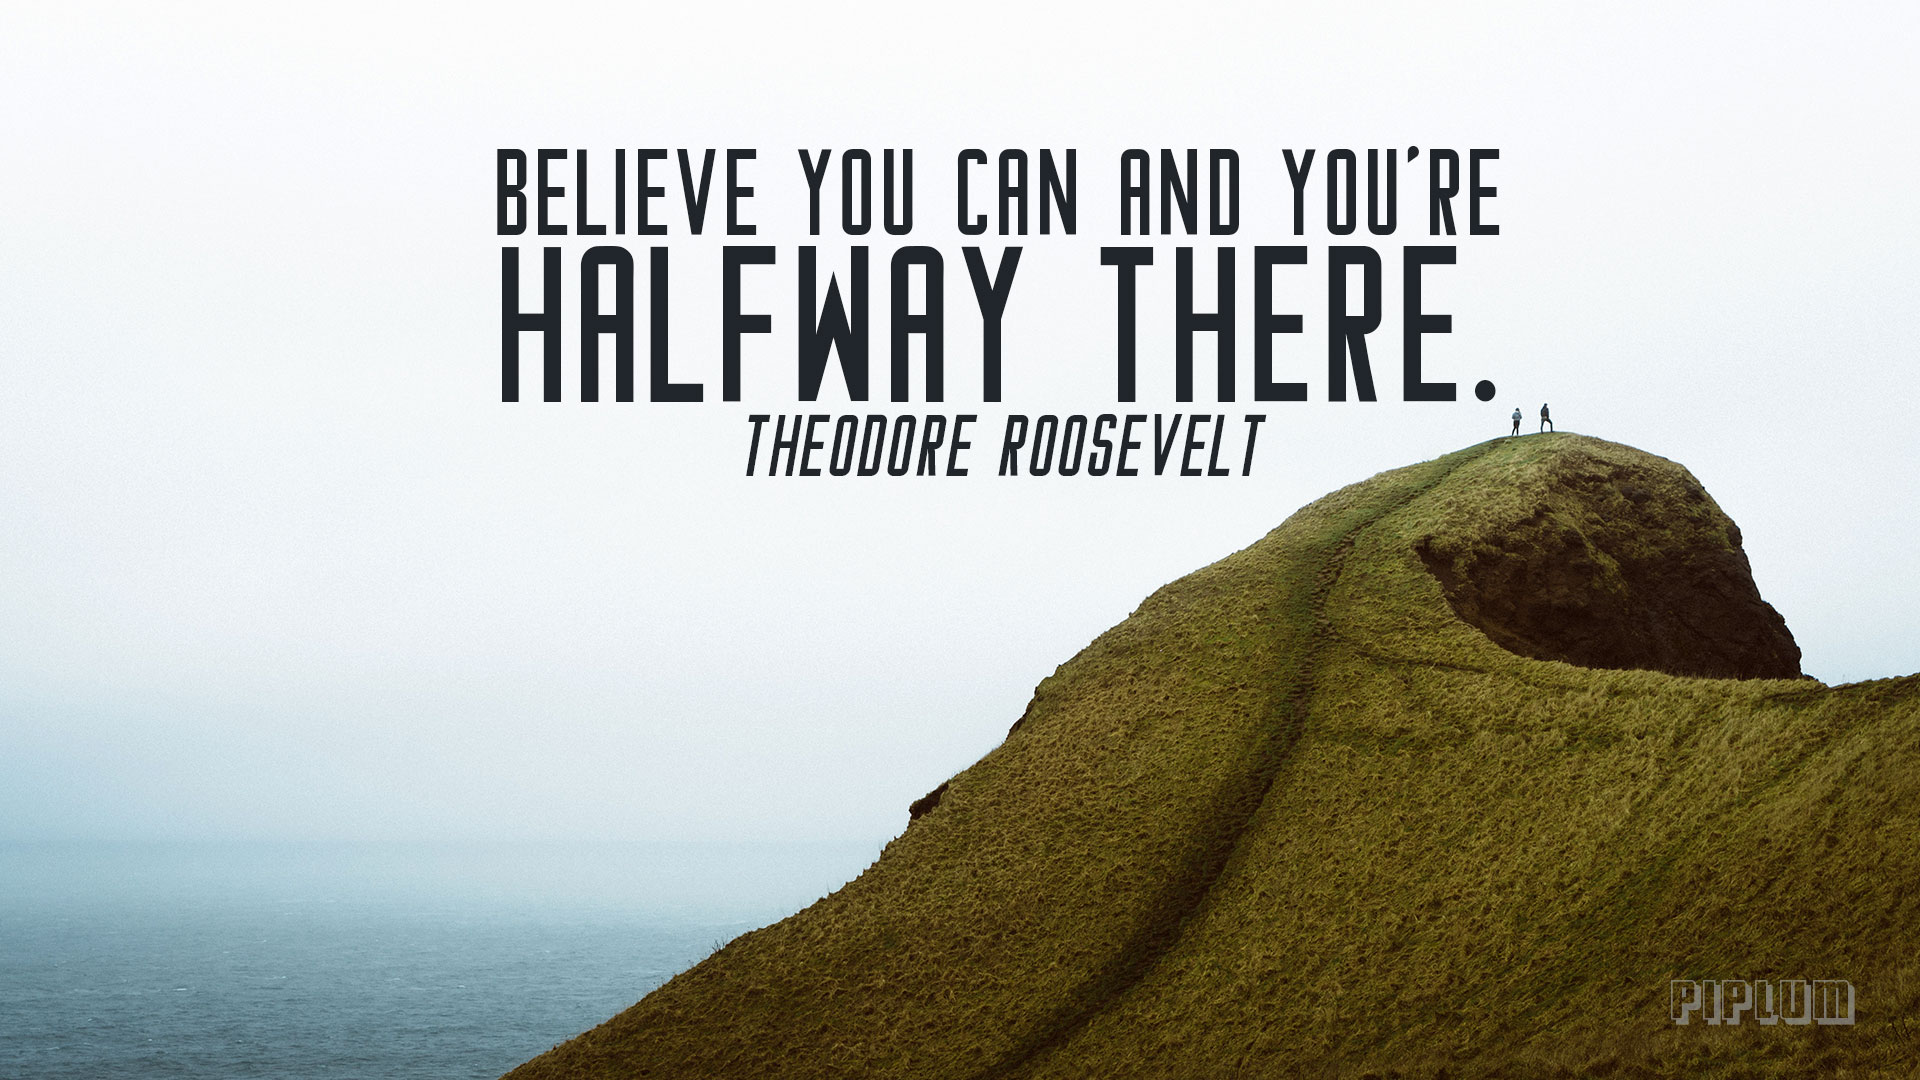 You- Inspirational Quote Believe You Can And You 39re Halfway